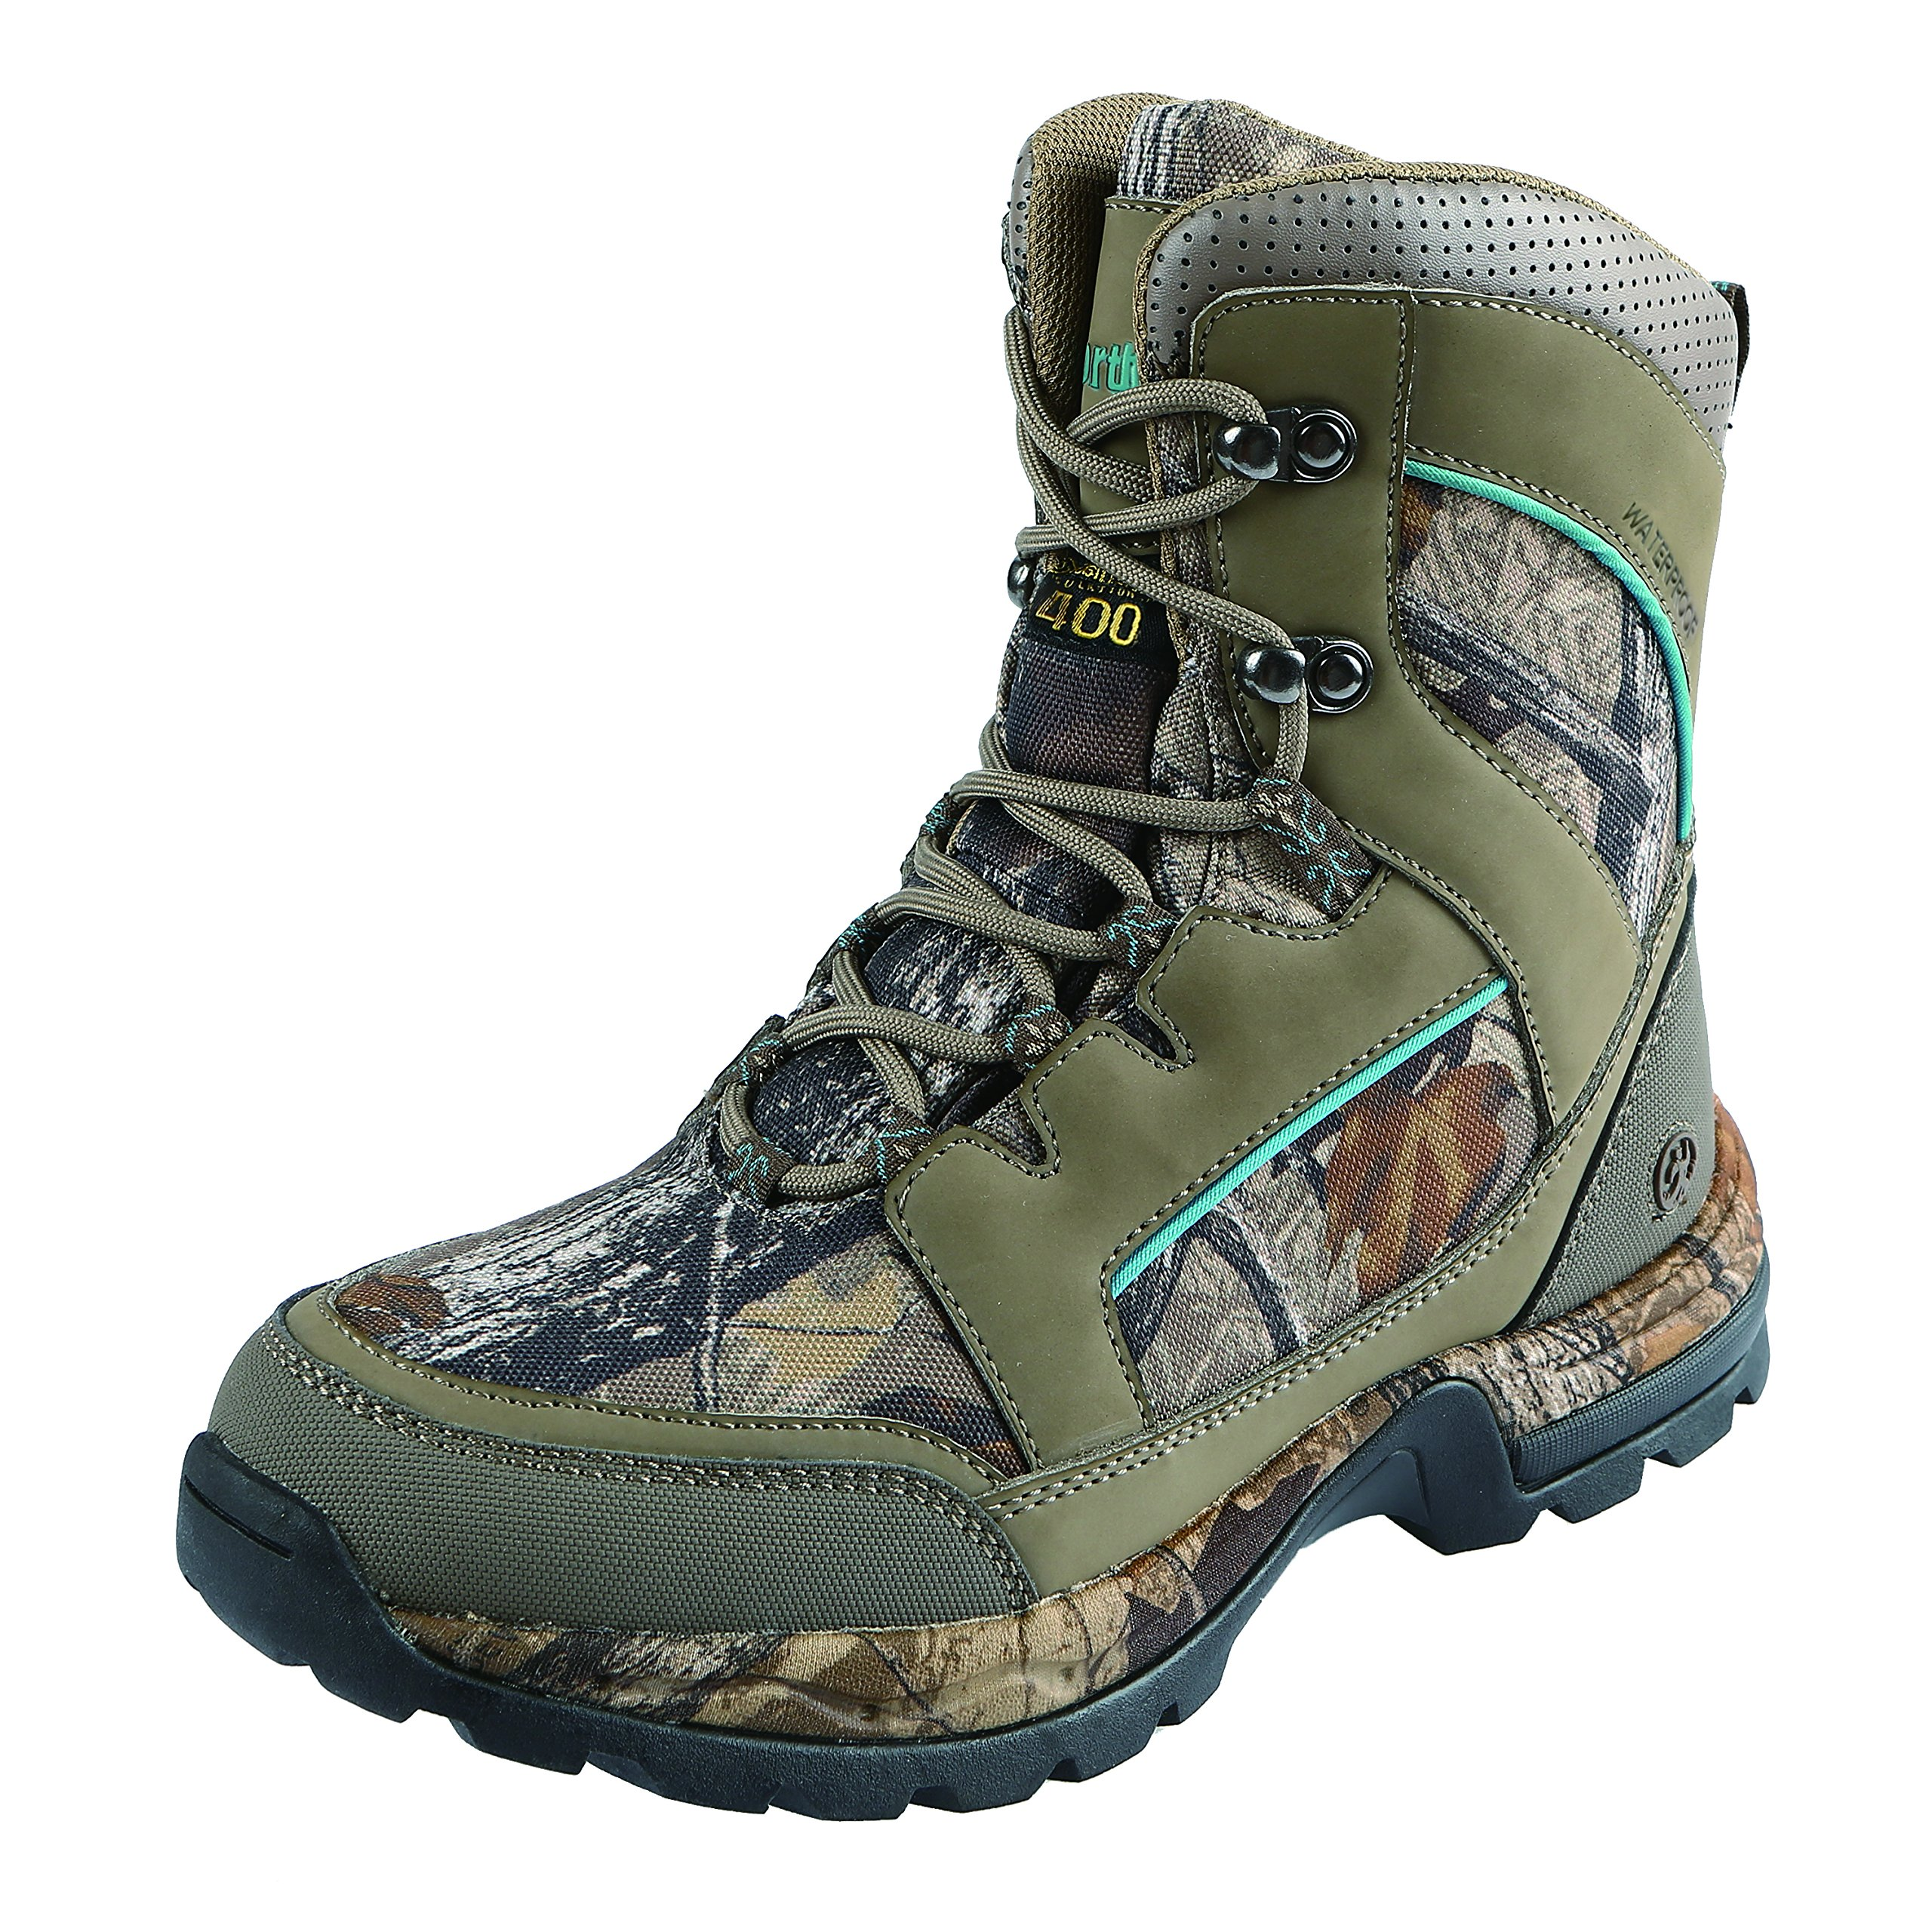 Northside Women's Woodbury 800 Hunting Shoes by Northside